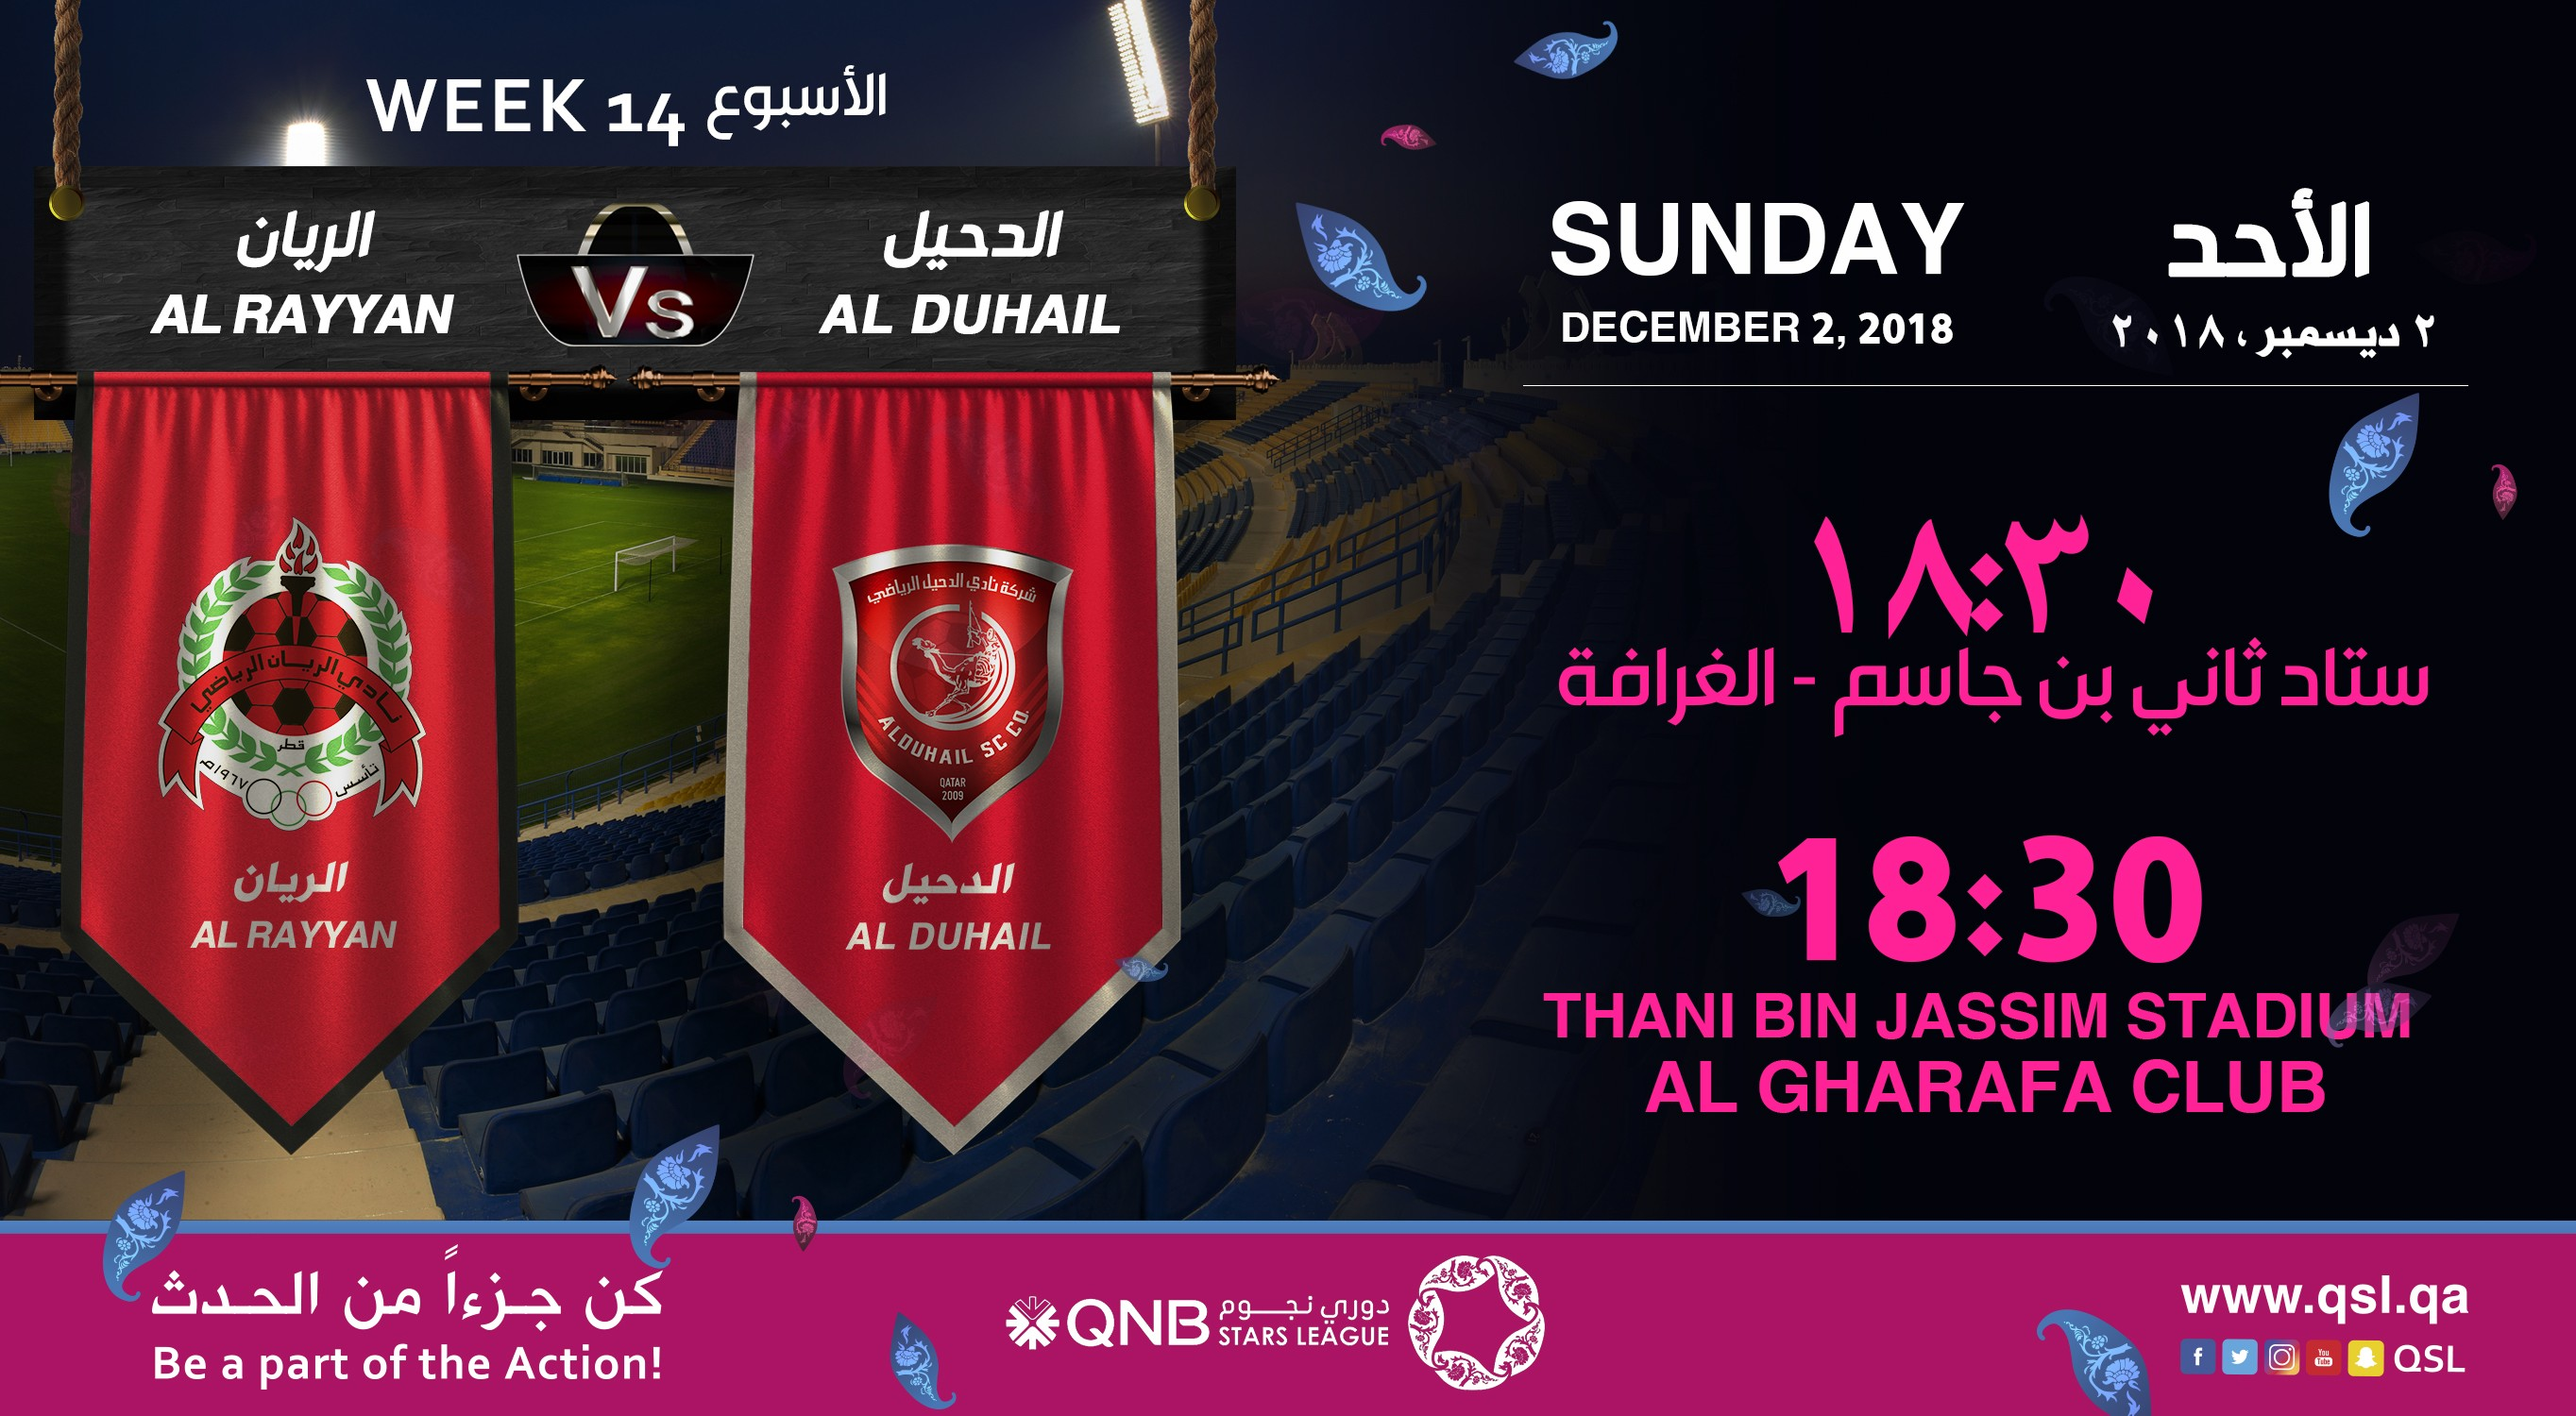 QNB Stars League Week 14 — Al Rayyan vs Al Duhail